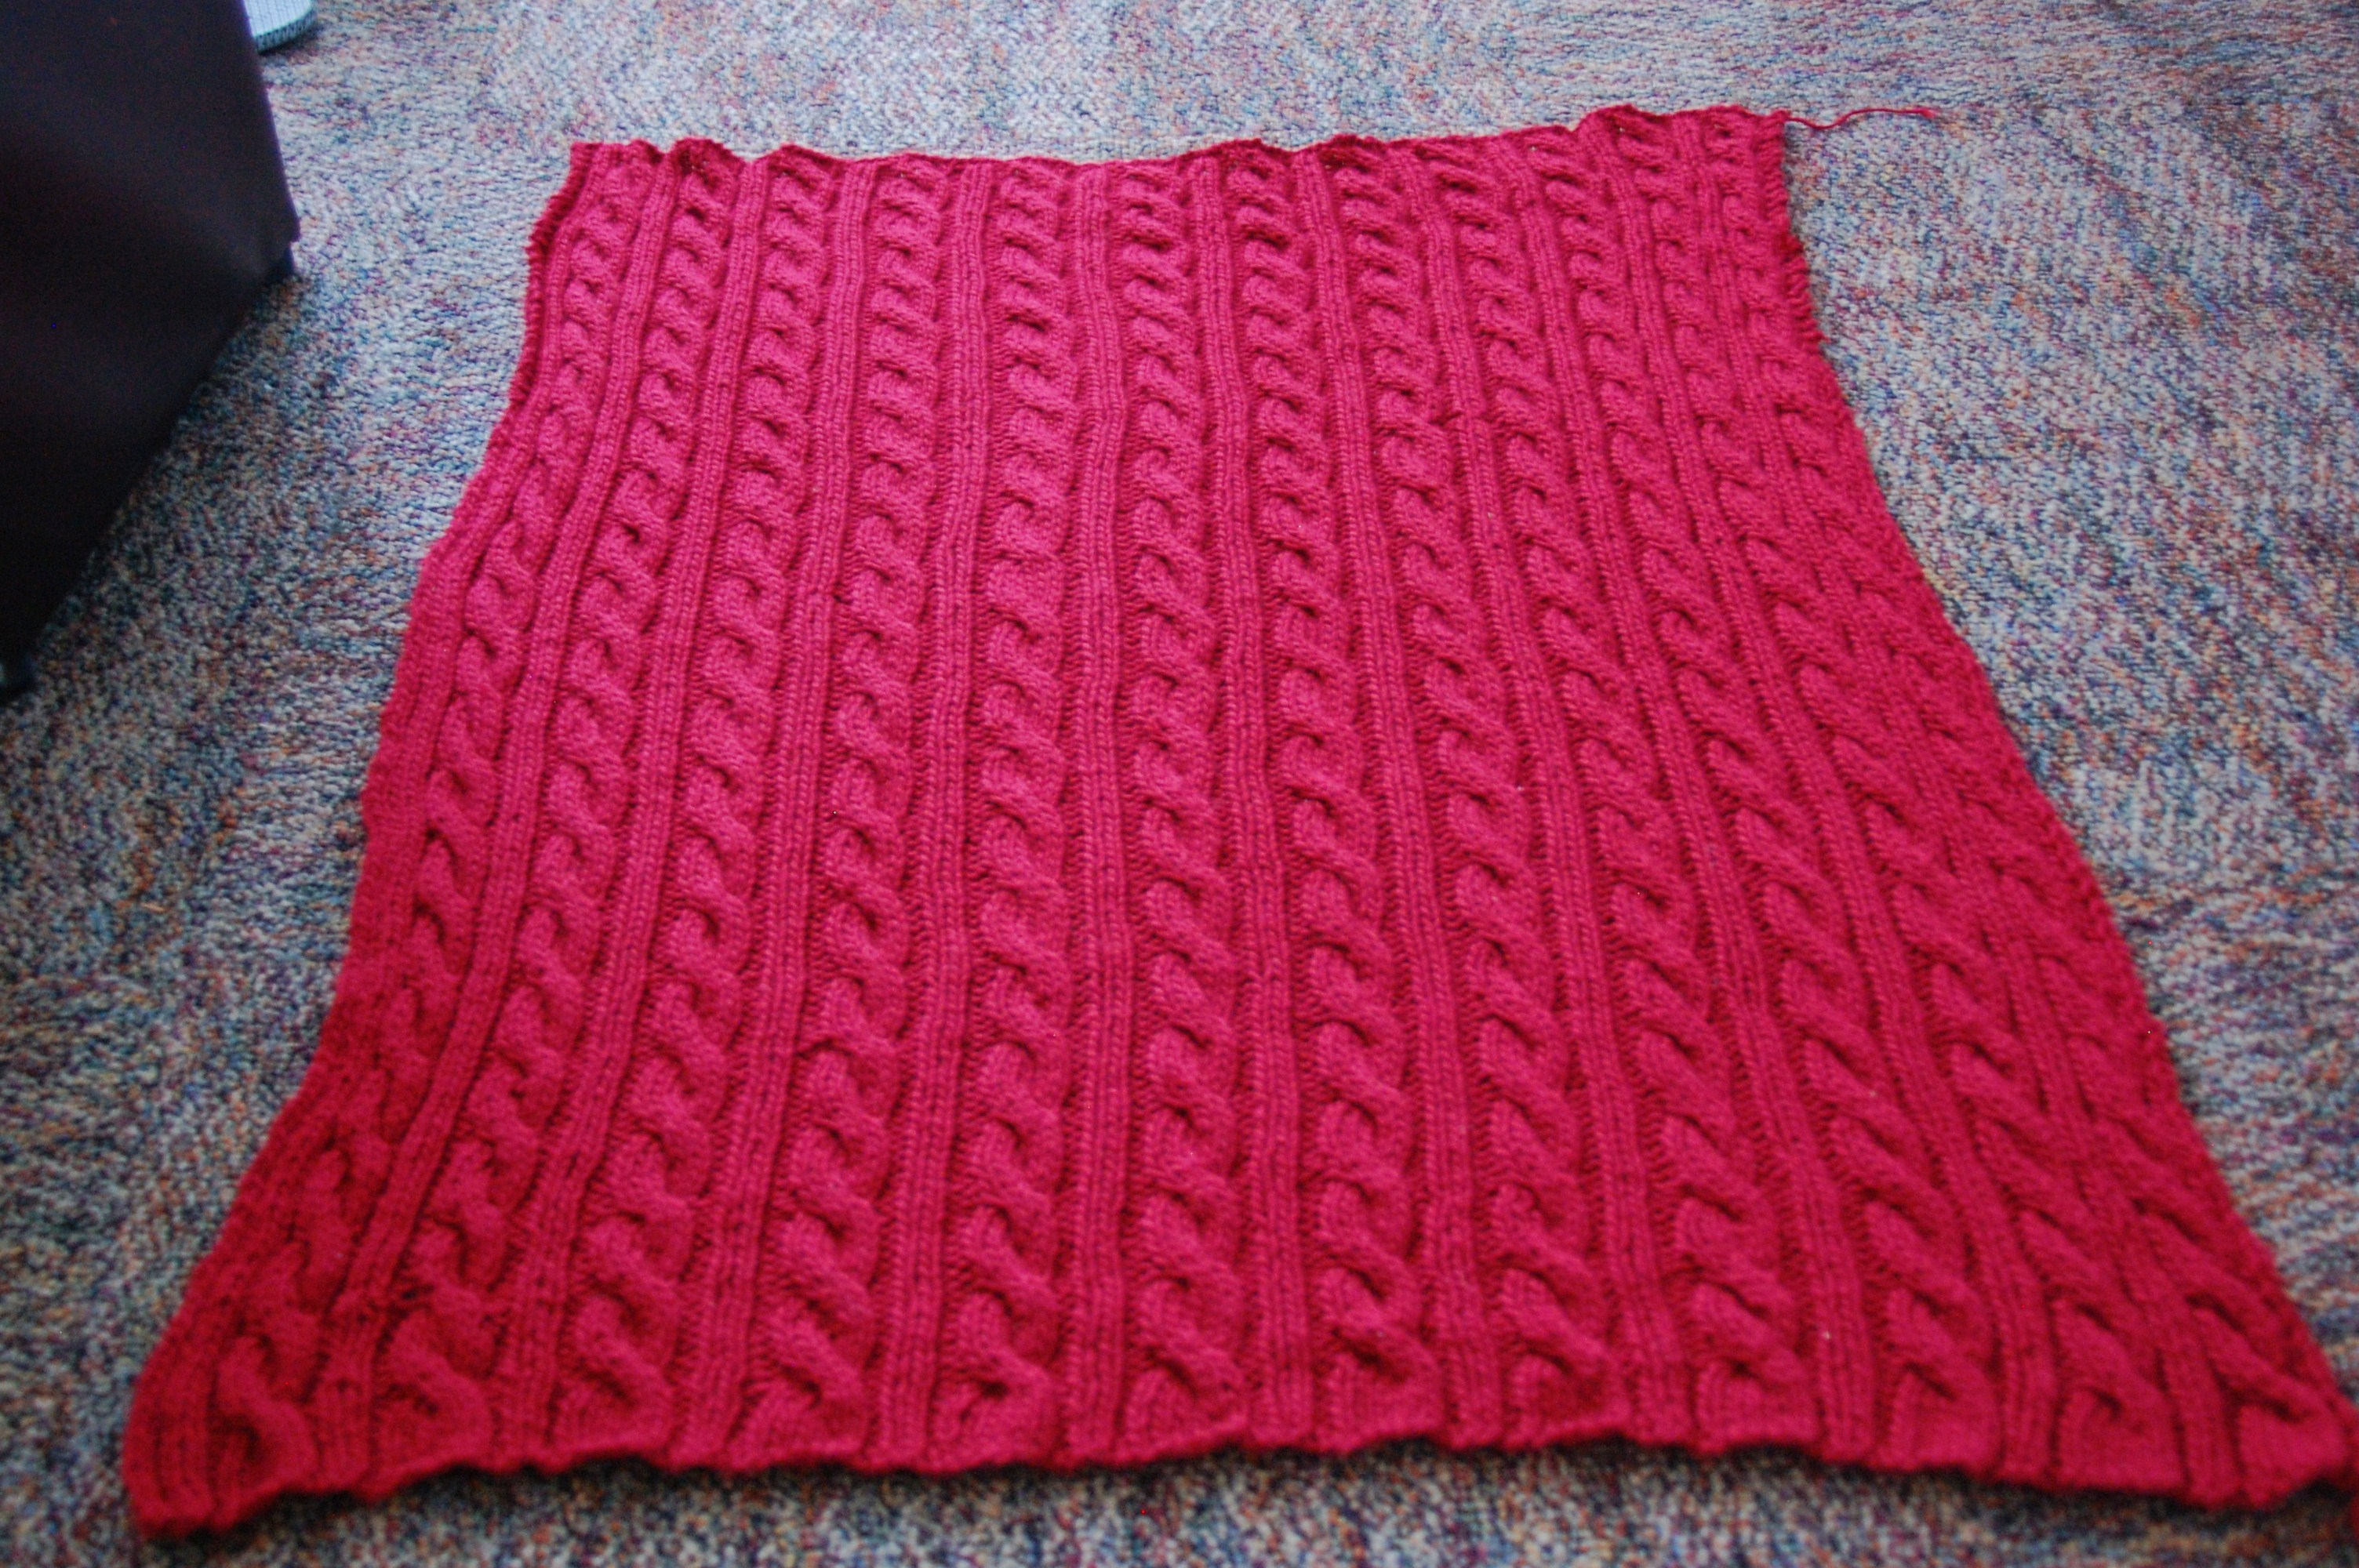 Red Cable Blanket Knittybutton